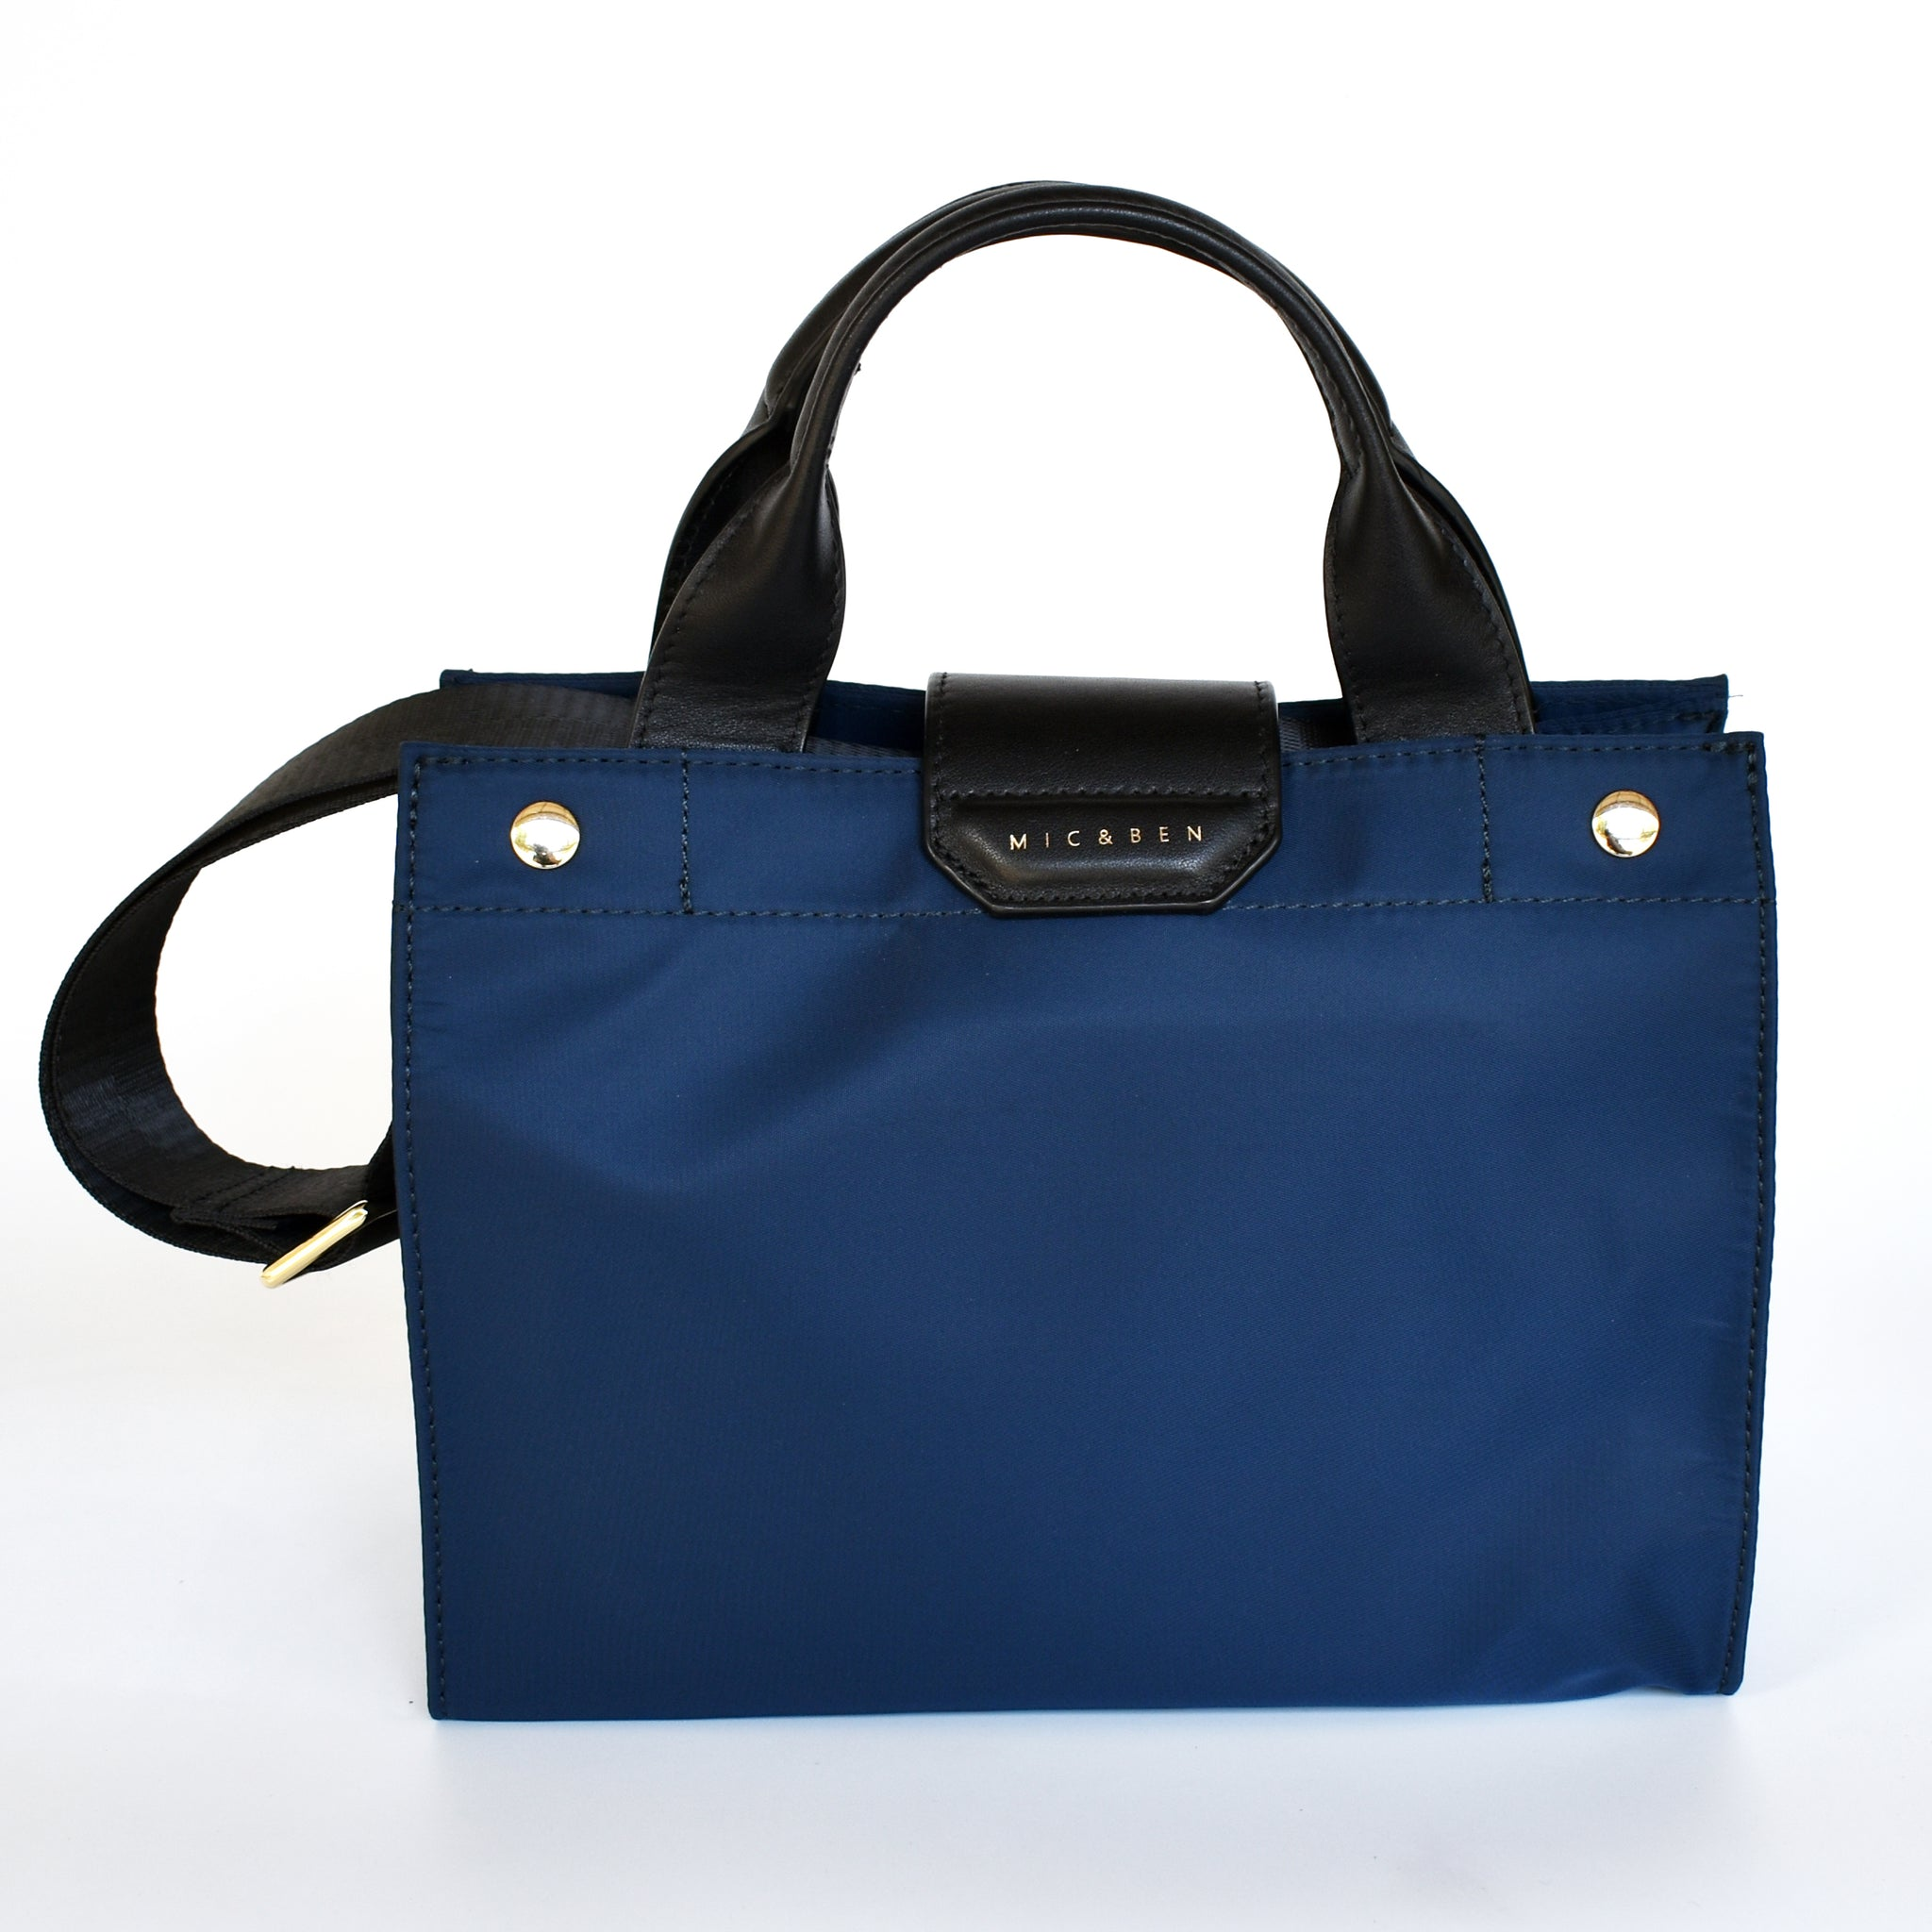 AMIE NYLON TOTE BAG - INK BLUE